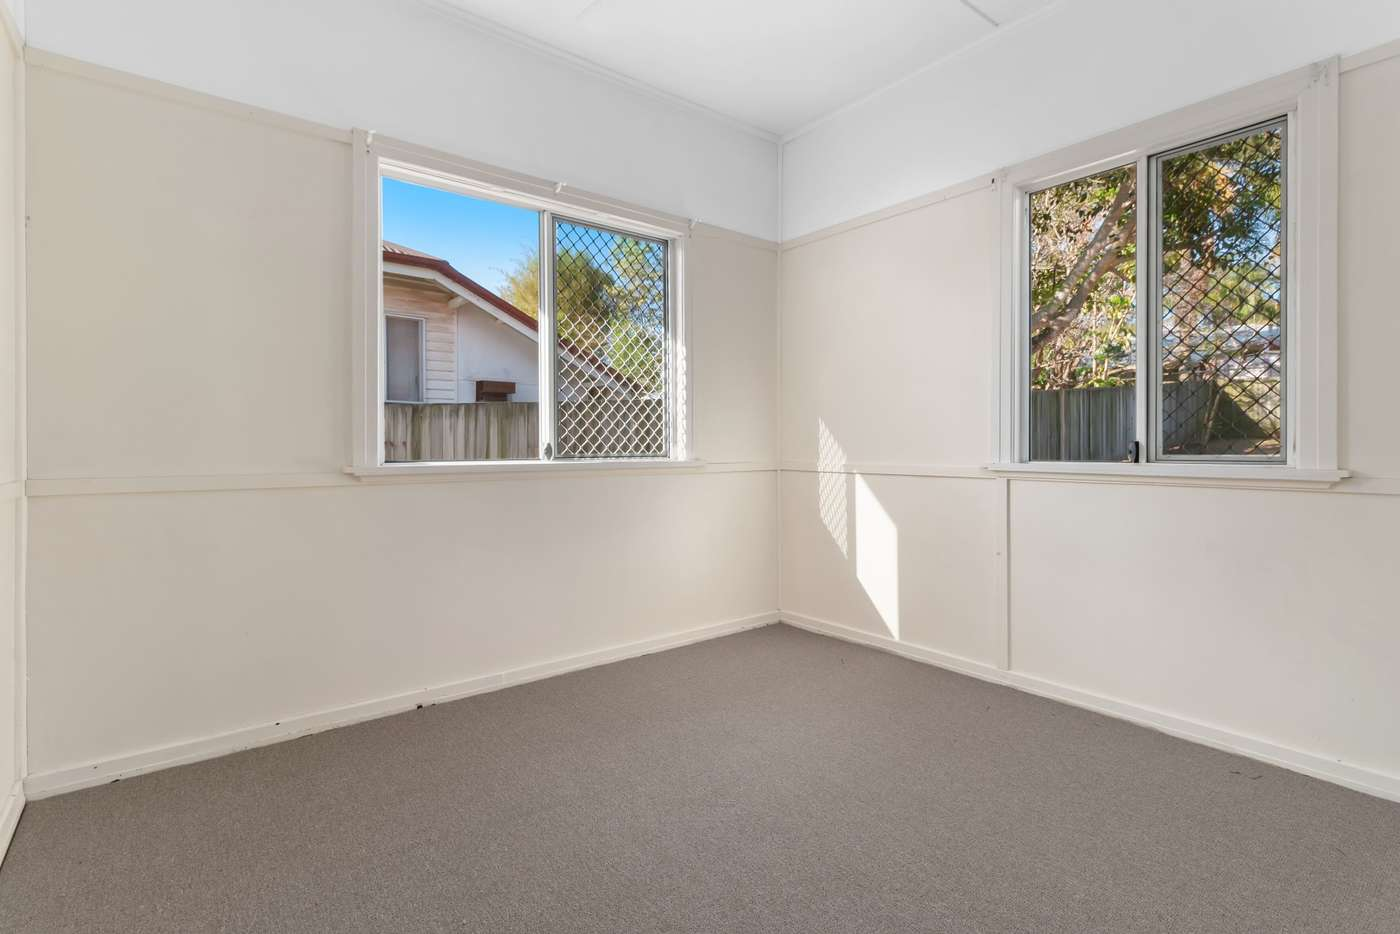 Seventh view of Homely house listing, 18 Dobbie St, Holland Park QLD 4121